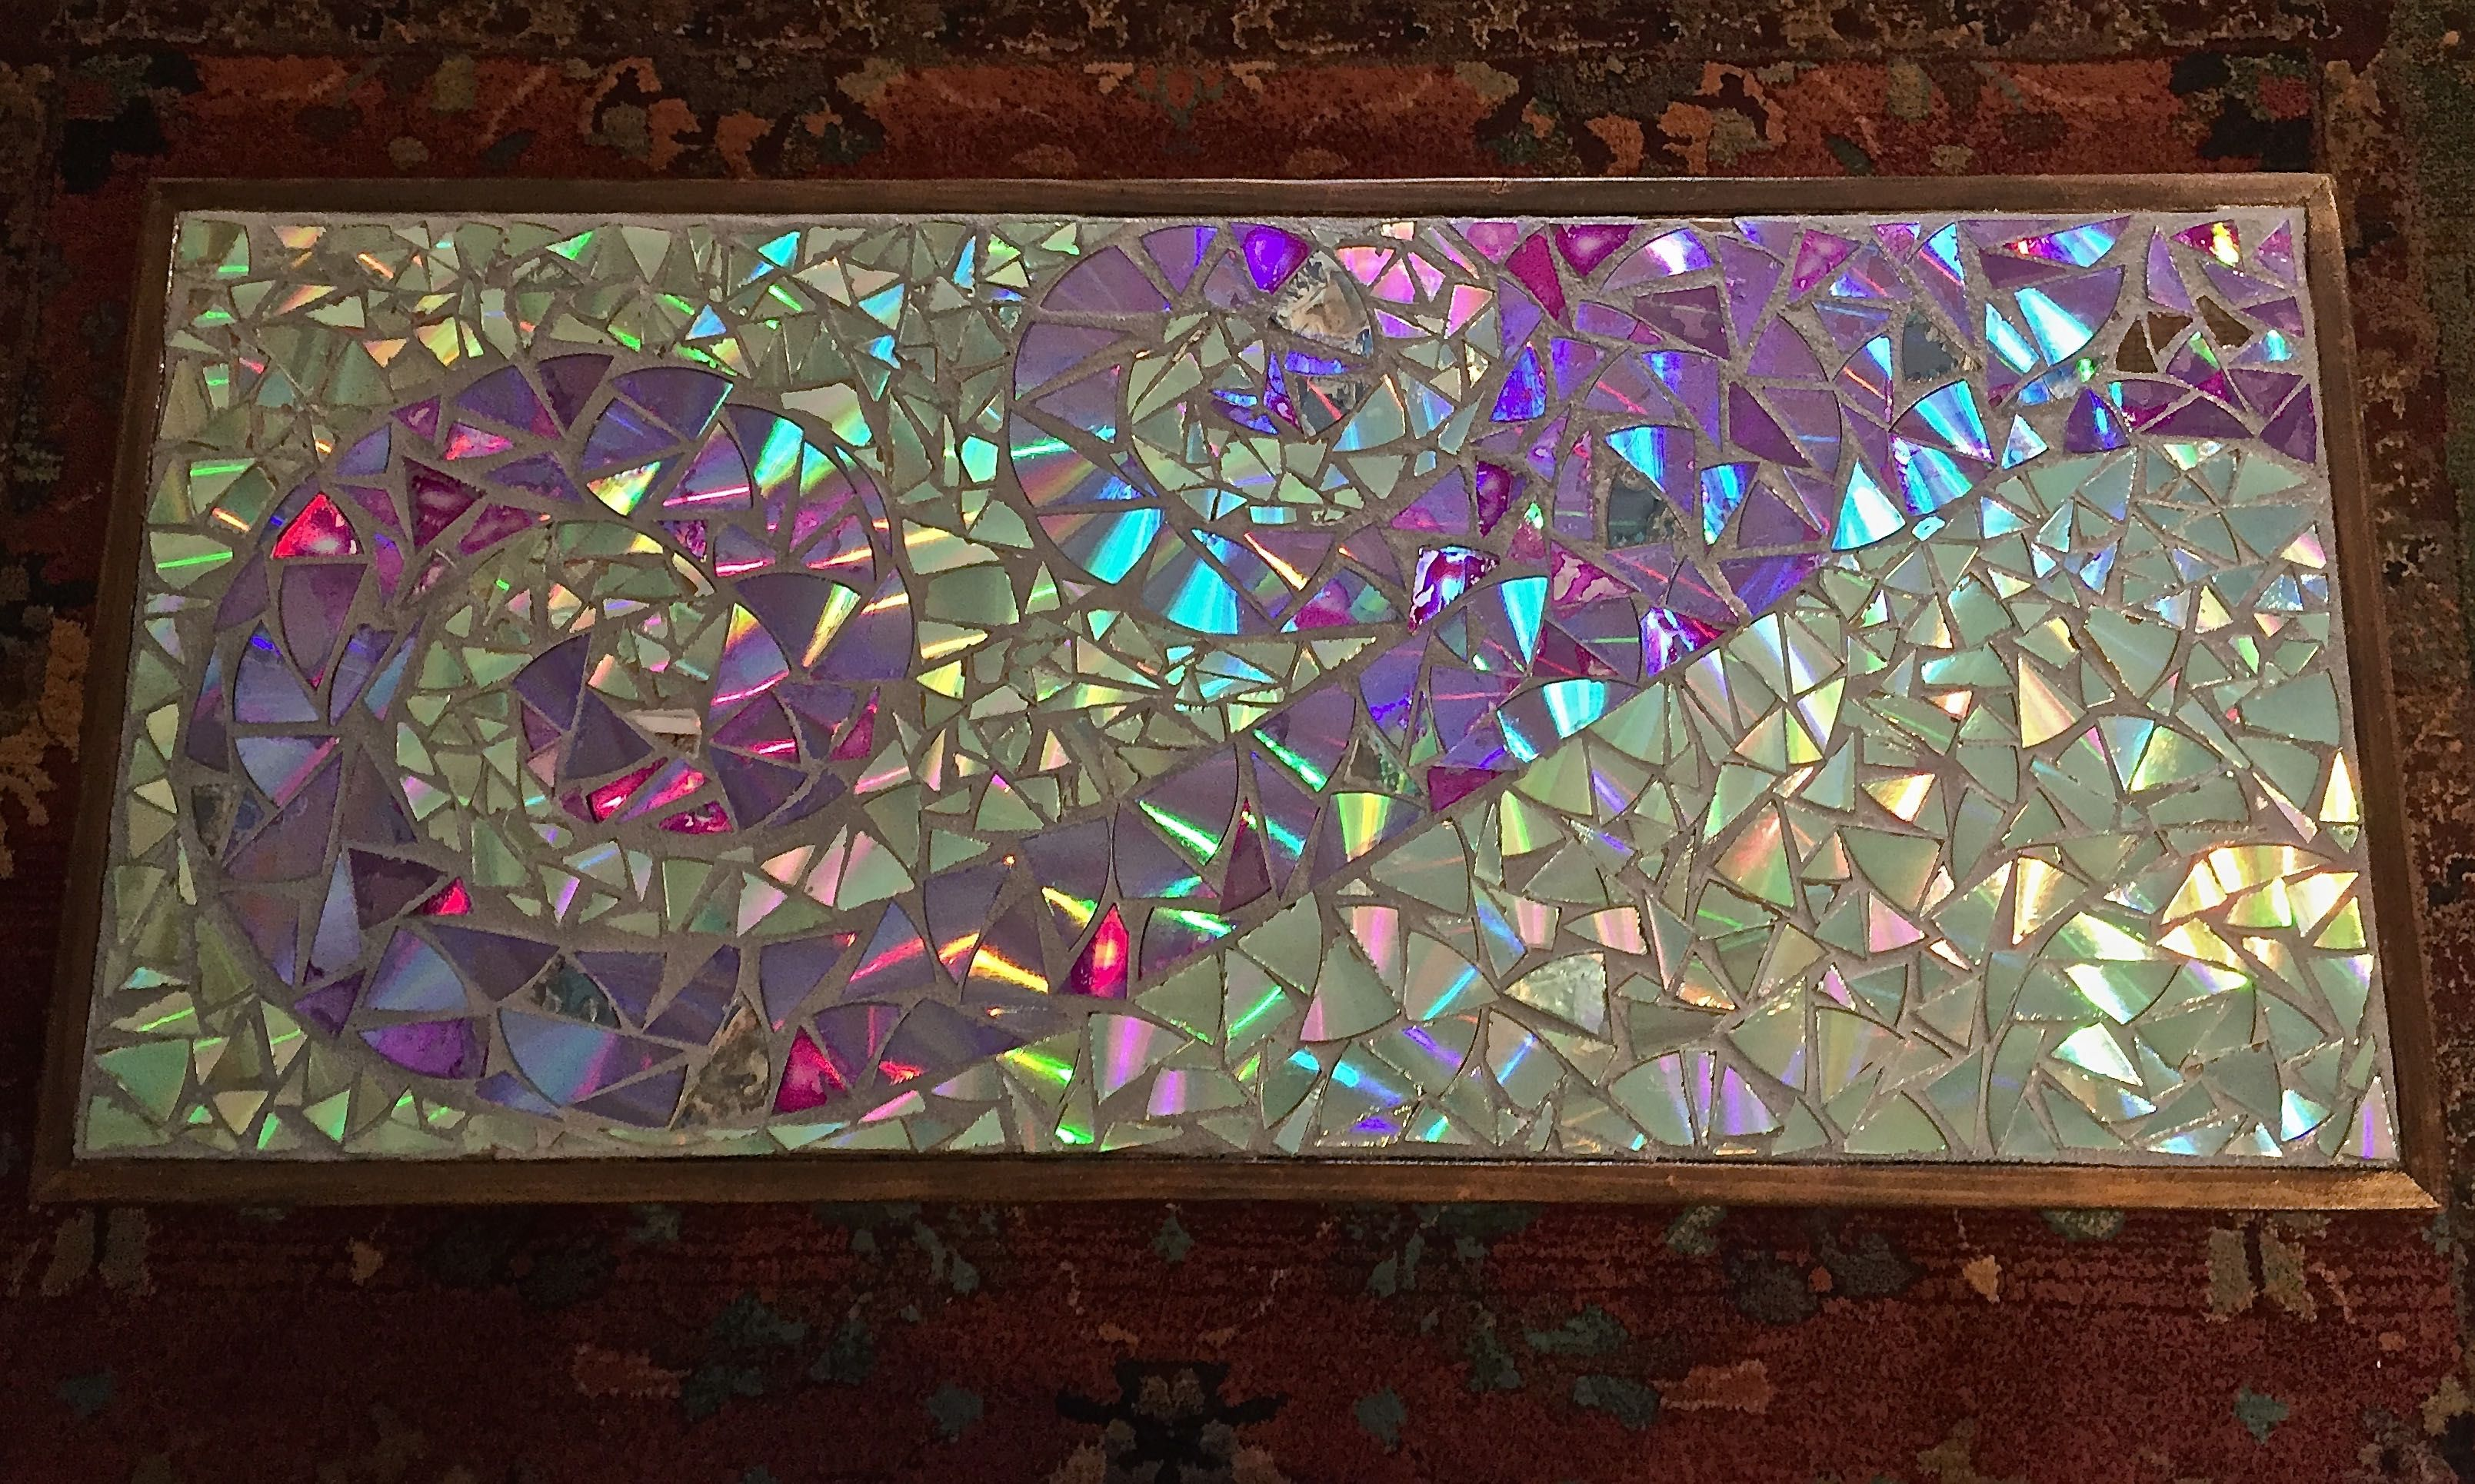 The Upper Elementary class used cut pieces of CDs and DVDs to make this mosaic table.